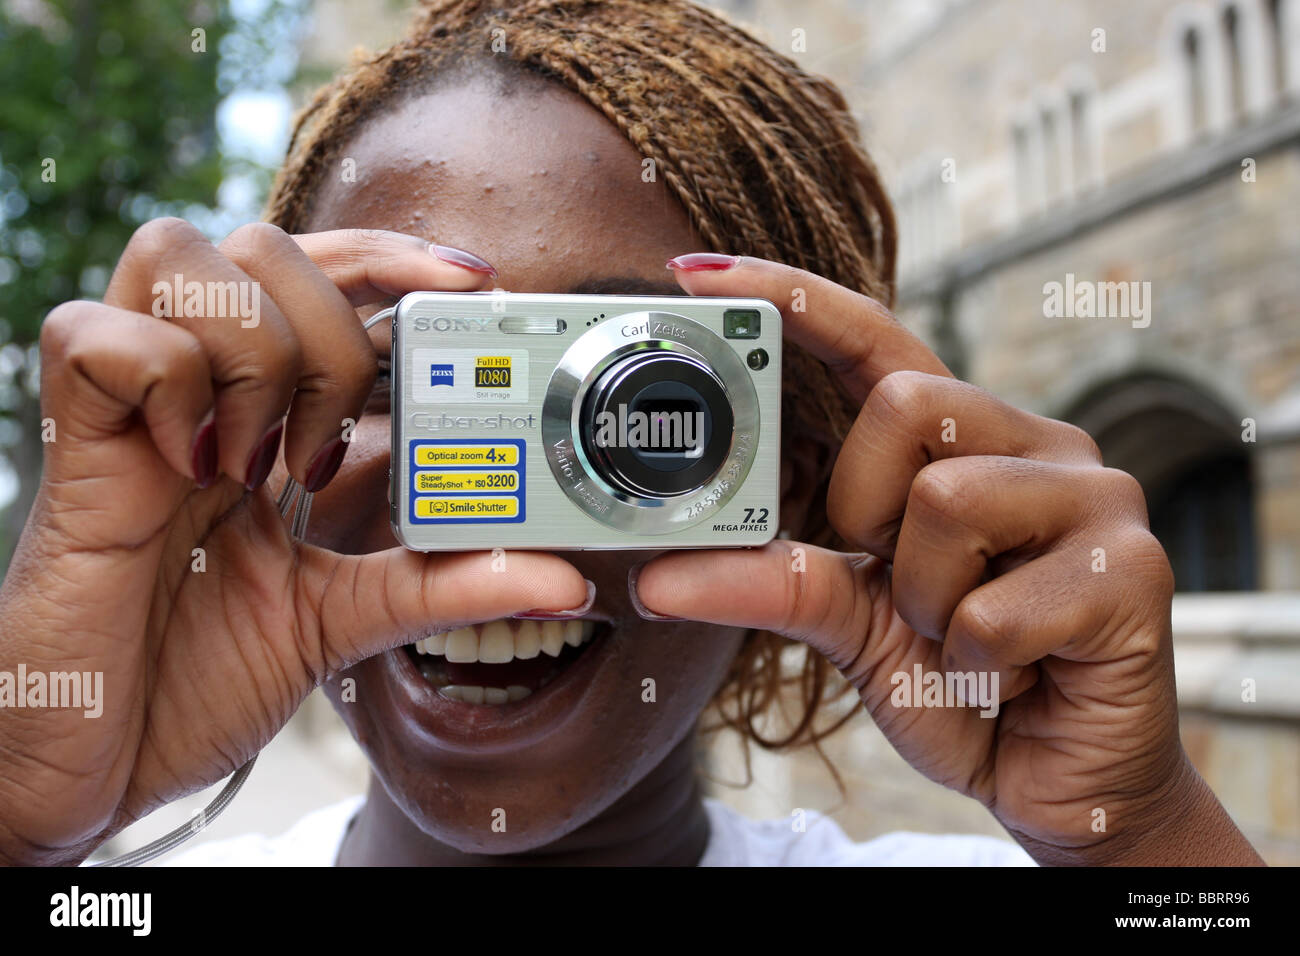 A woman takes a digital photo with a compact digital camera - Stock Image